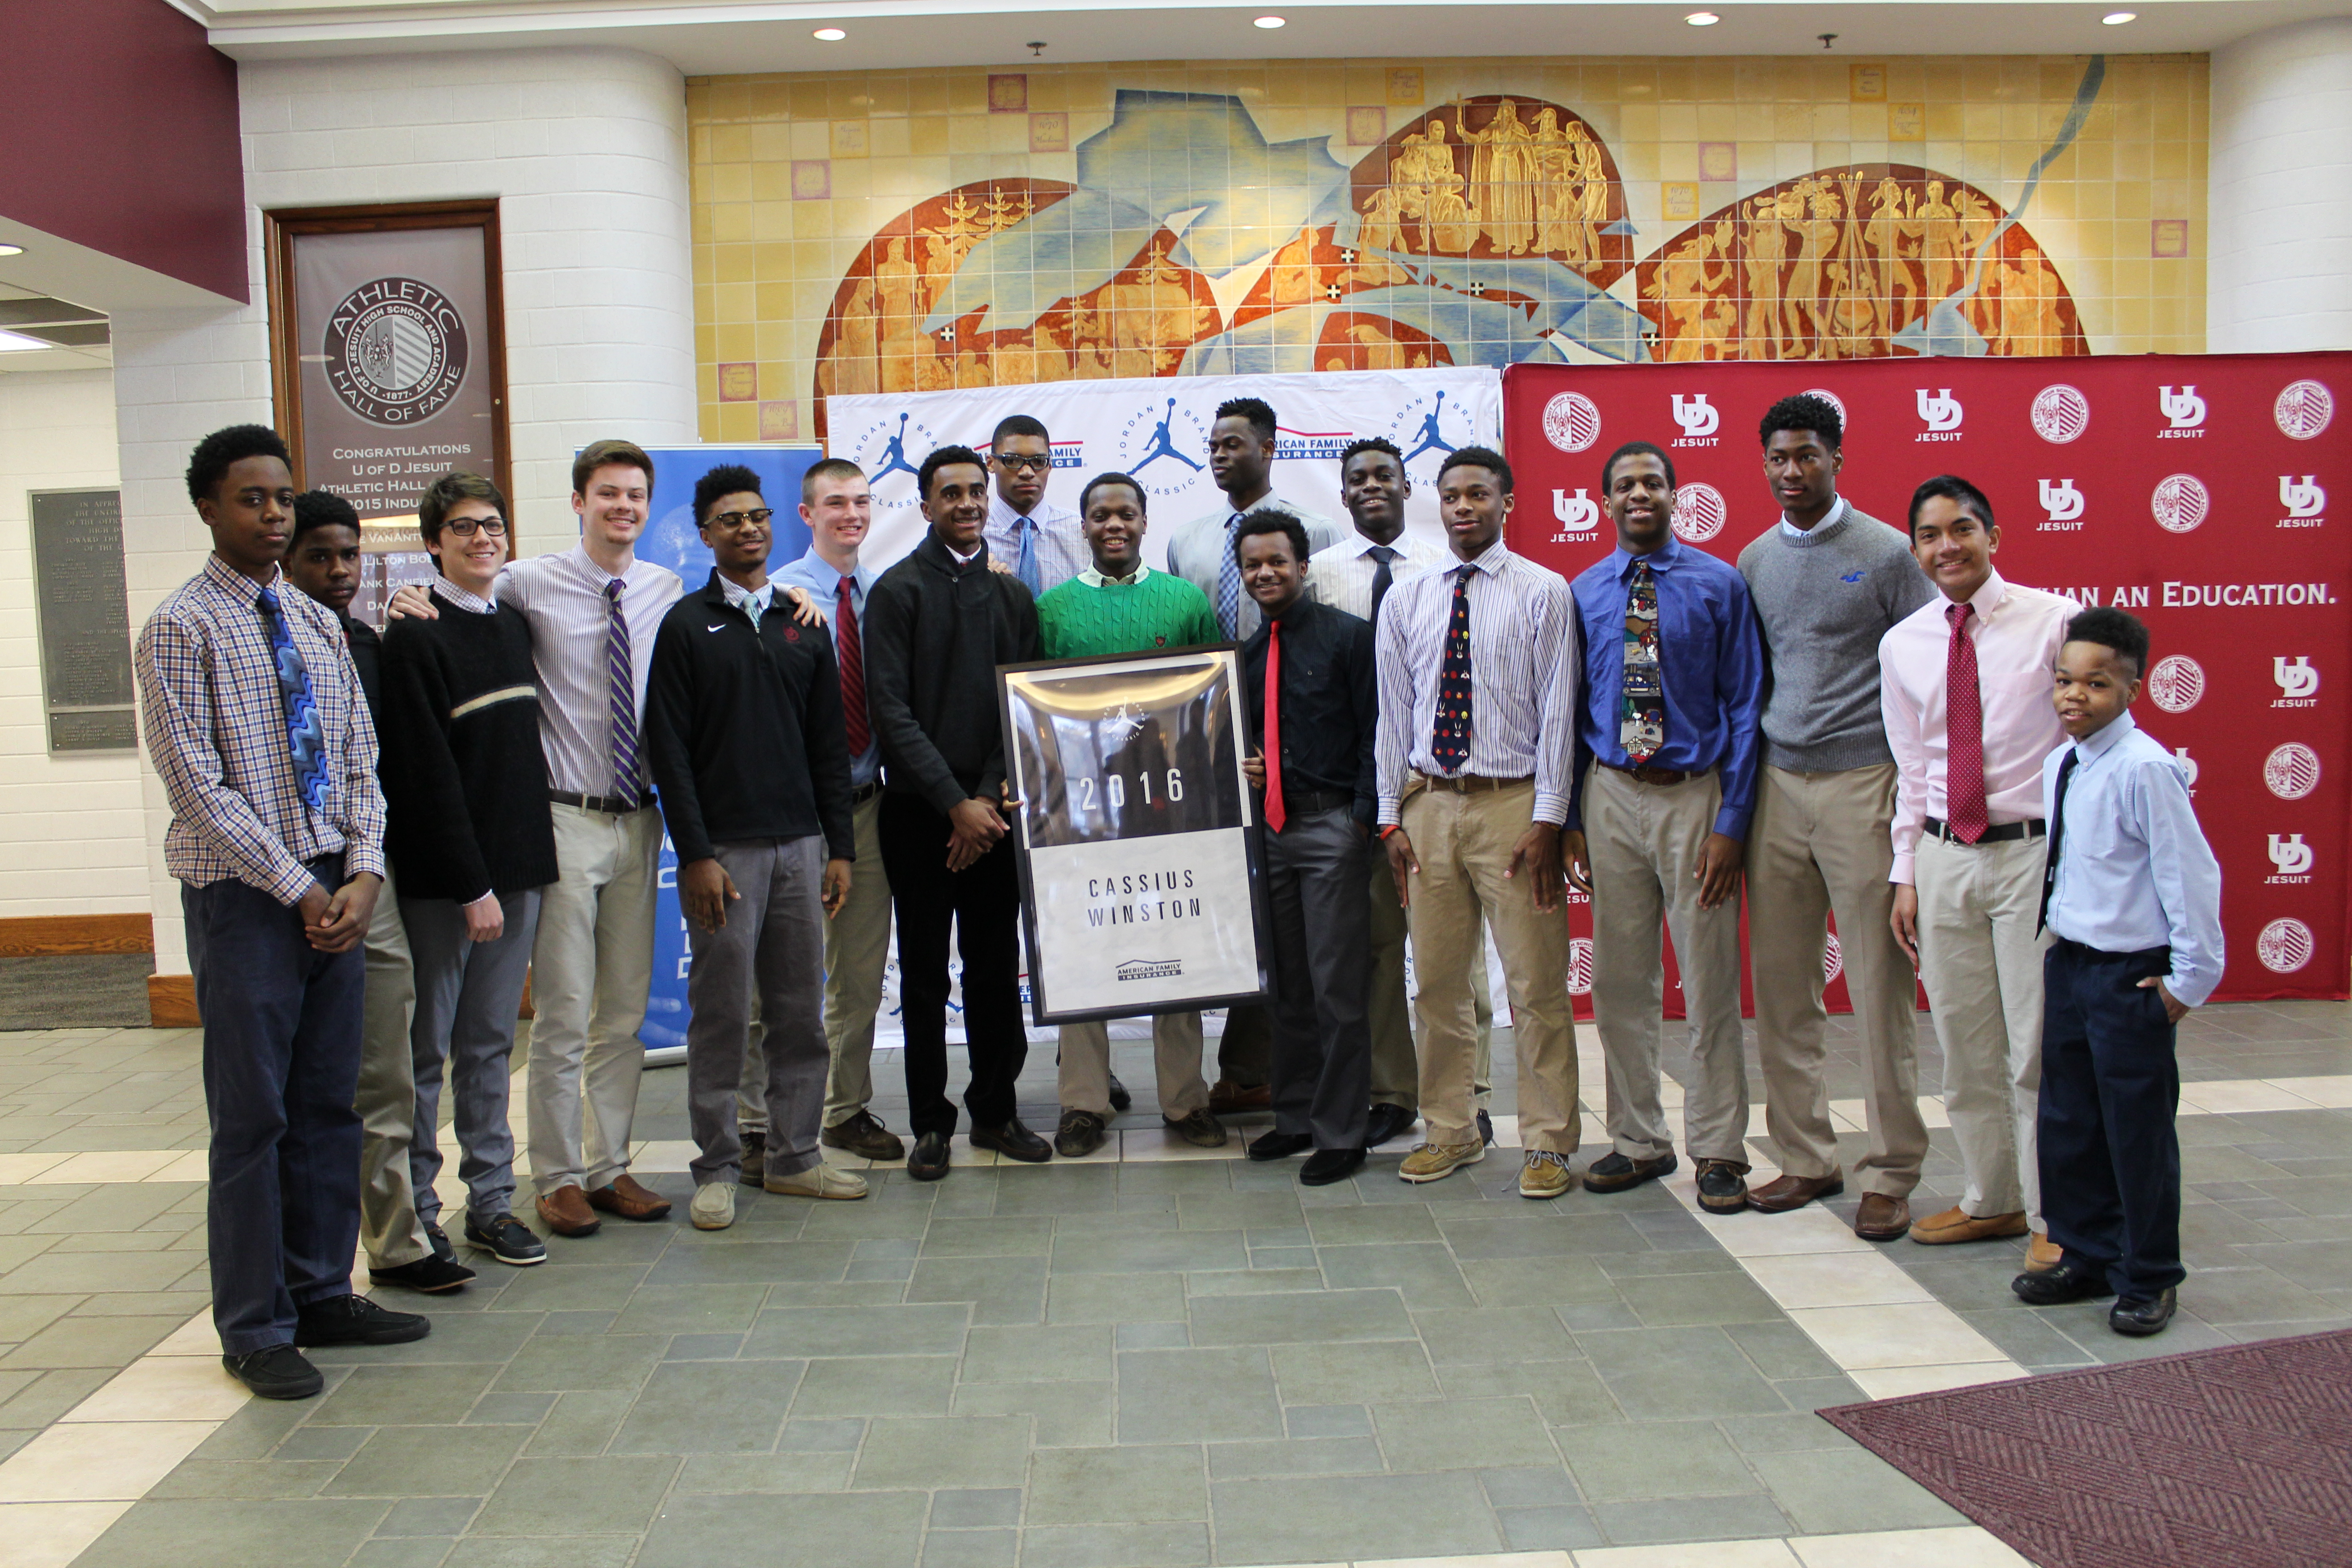 Cassius Winston (center) shares a ceremony for his selection to the Jordan Brand Classic with his teammates at Detroit Jesuit (Photo: Jordan Brand Classic)